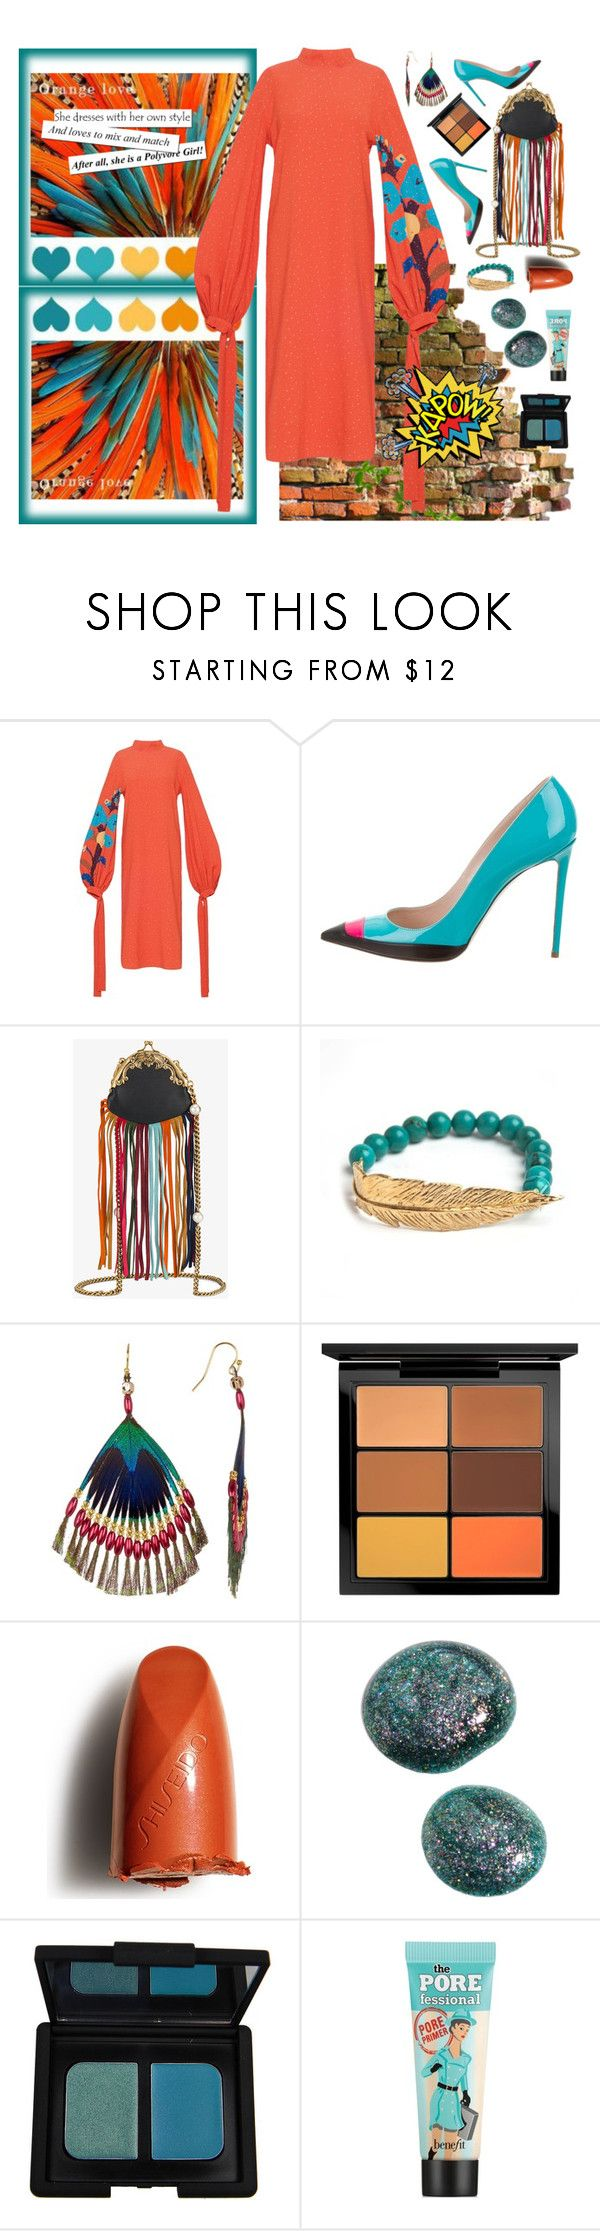 """""""Untitled #2242"""" by diananicoleparsons ❤ liked on Polyvore featuring WALL, Ruthie Davis, Gucci, LeiVanKash, Taolei, MAC Cosmetics, Shiseido, NARS Cosmetics and Benefit"""